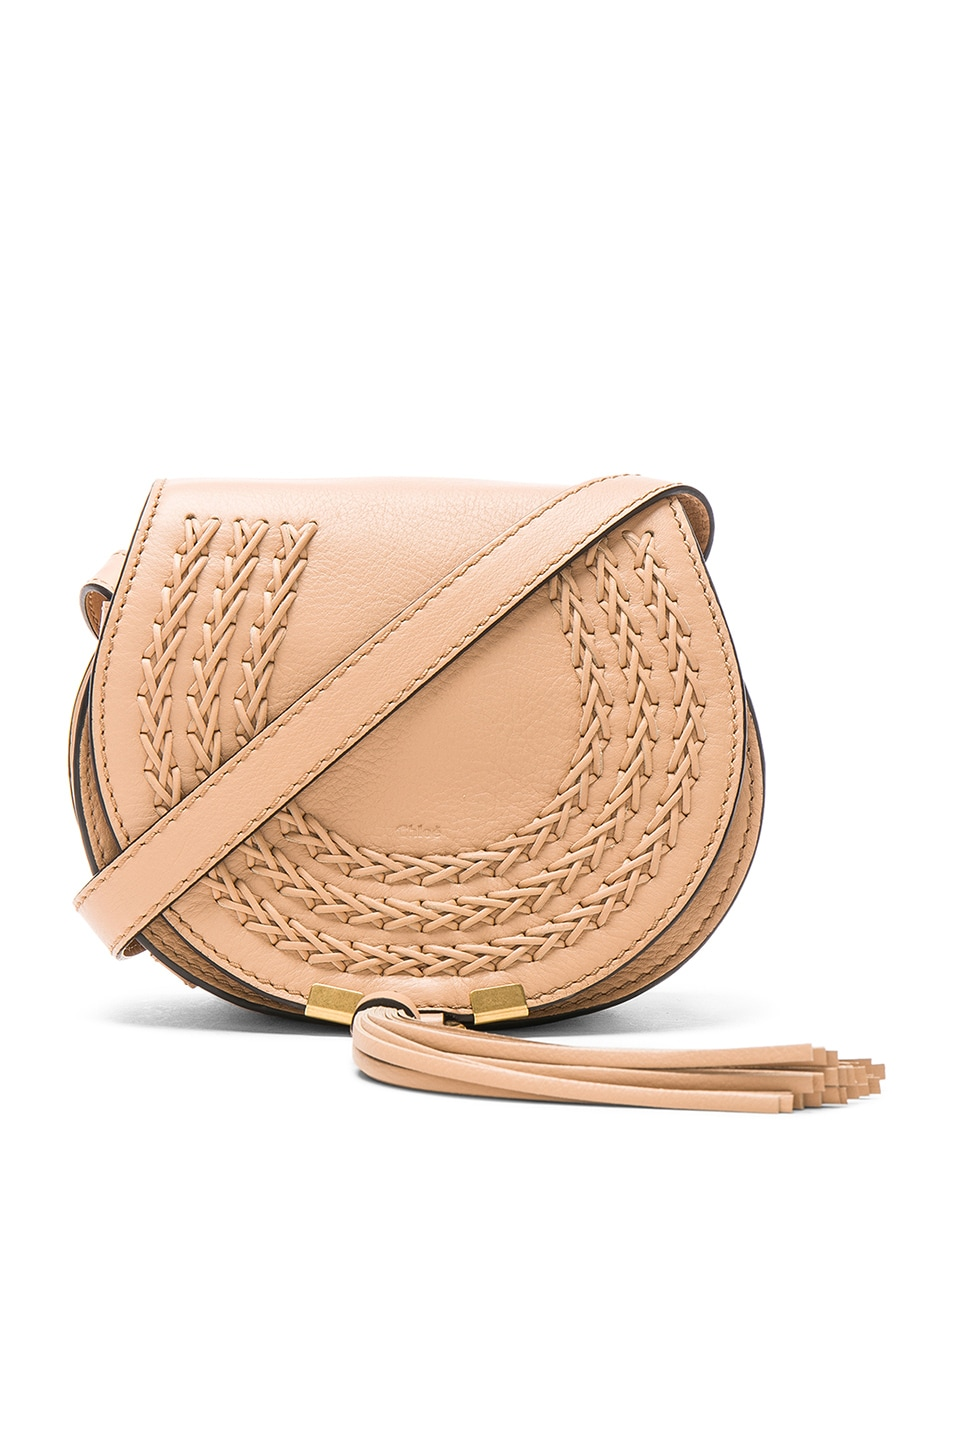 Image 1 of Chloe Small Braid Marcie Satchel in Blush Nude